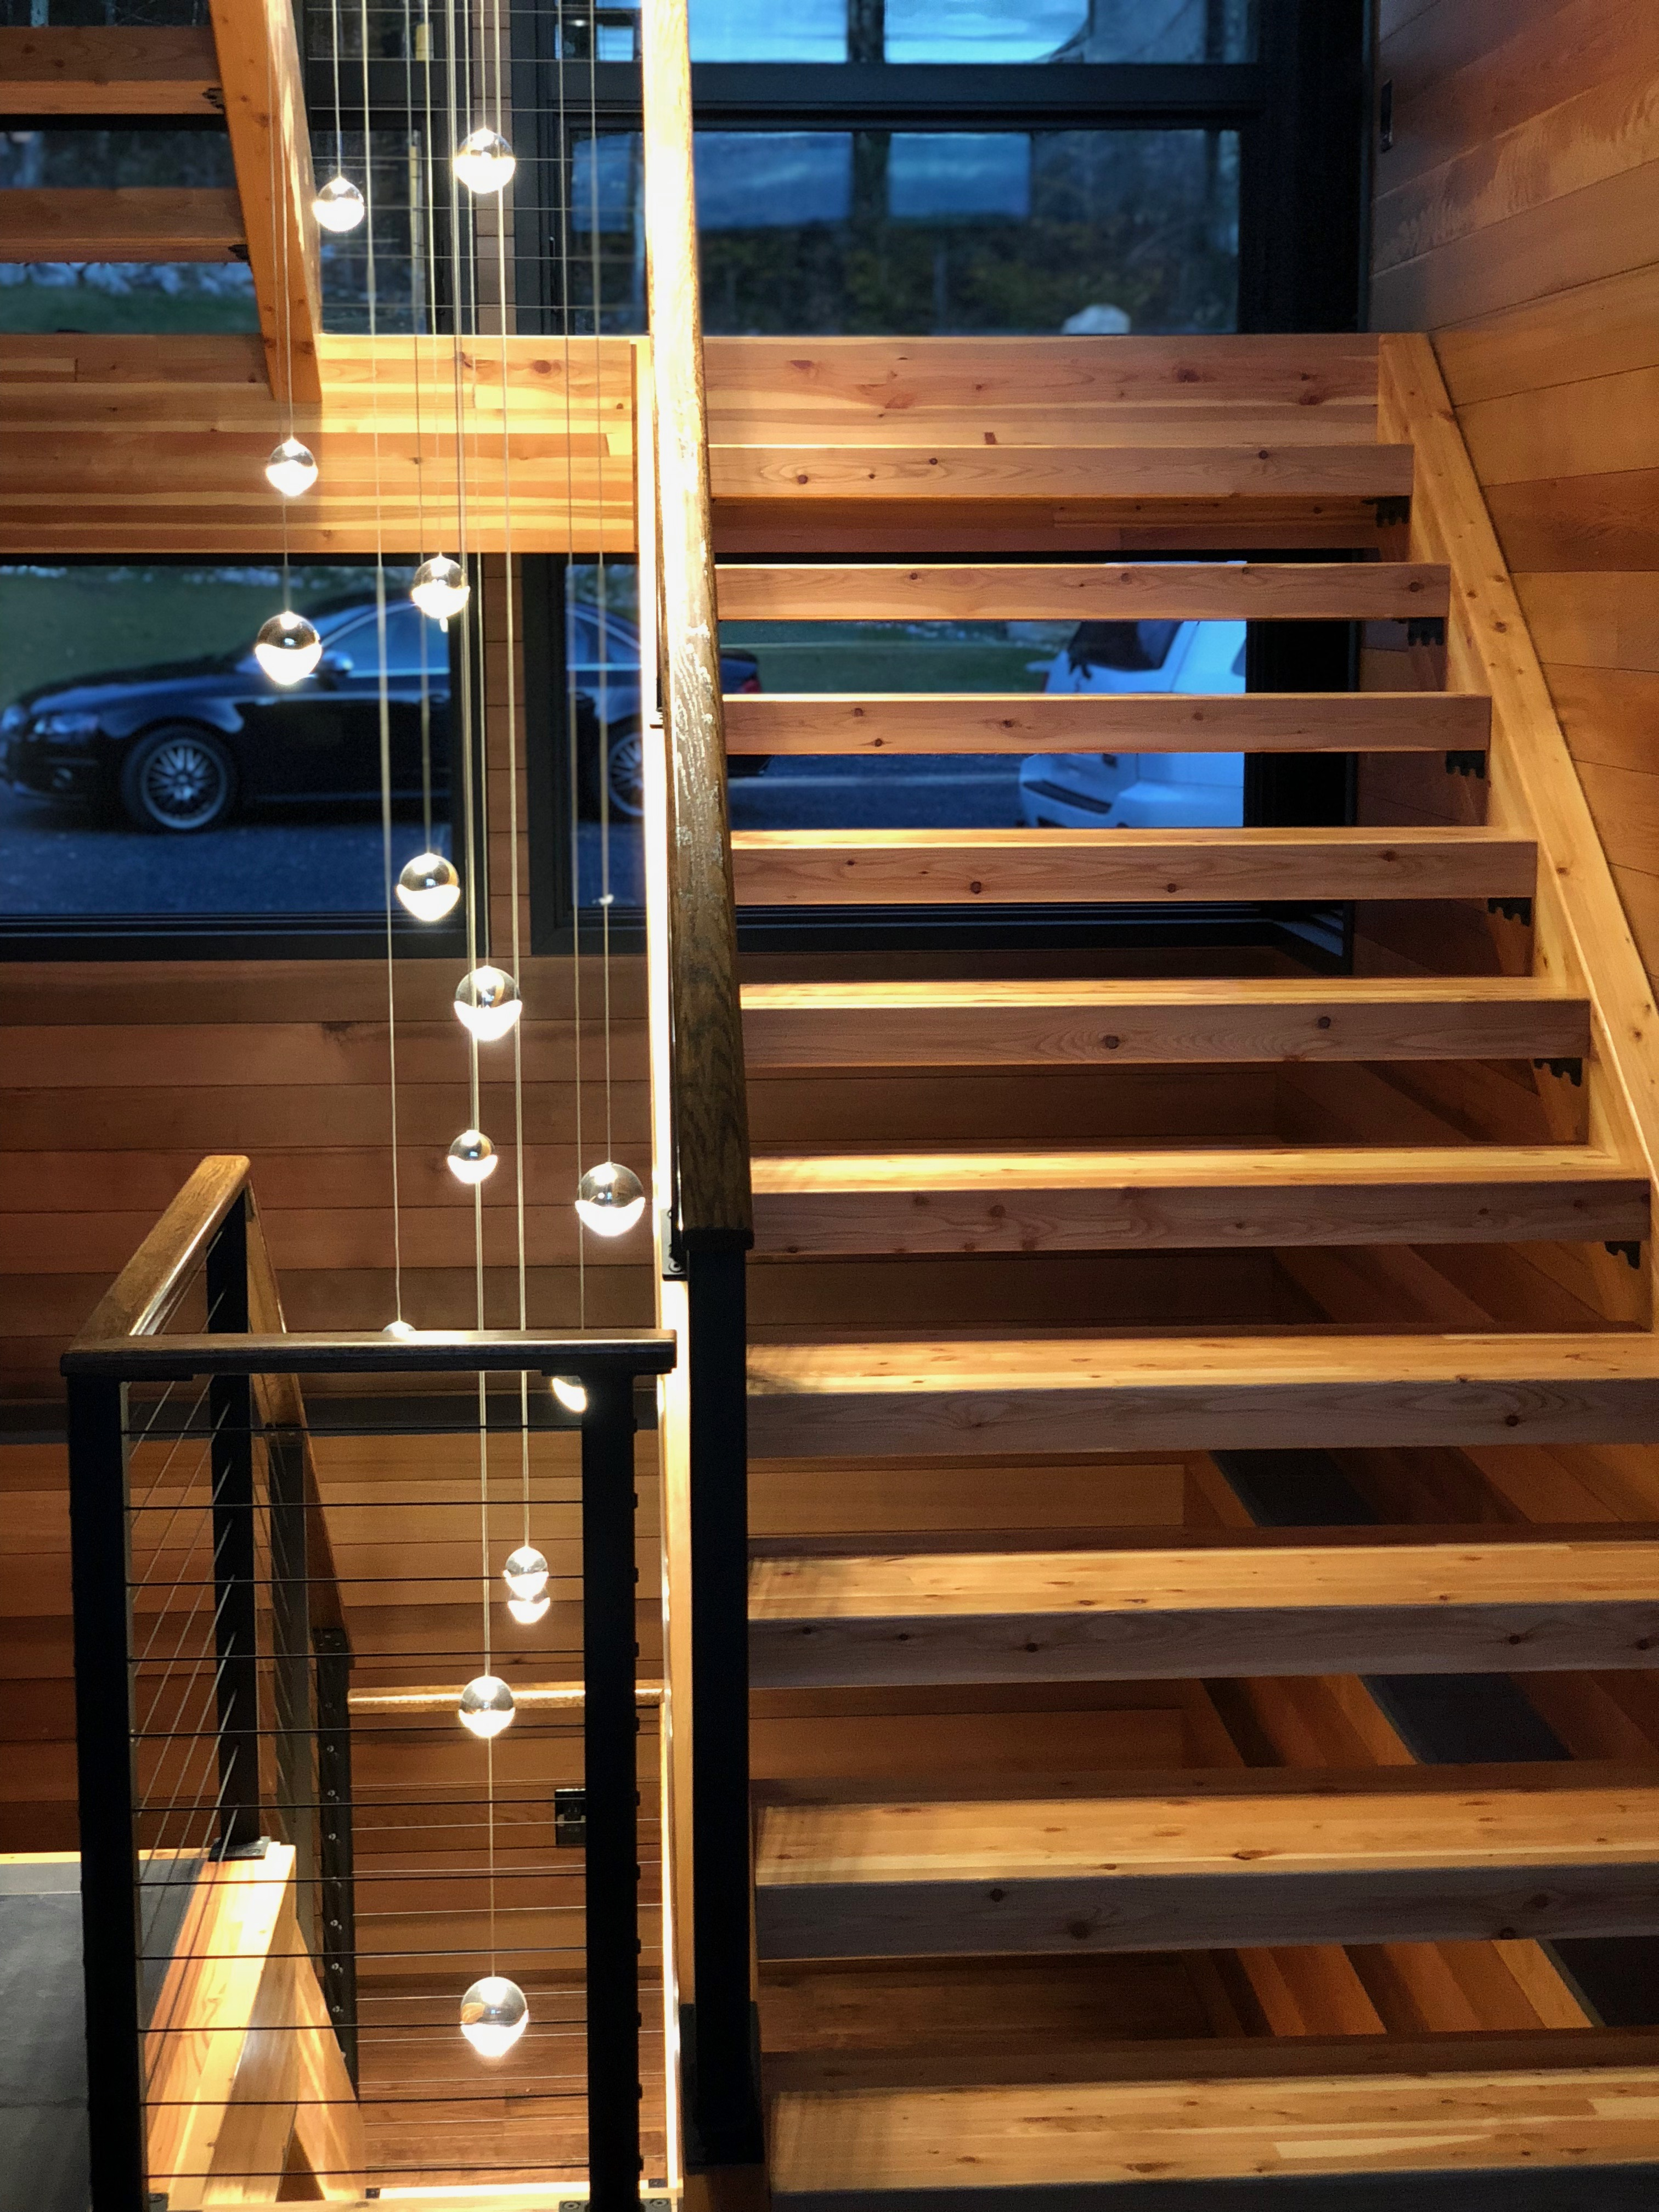 Wood treads on rustic stairs with modern lighting